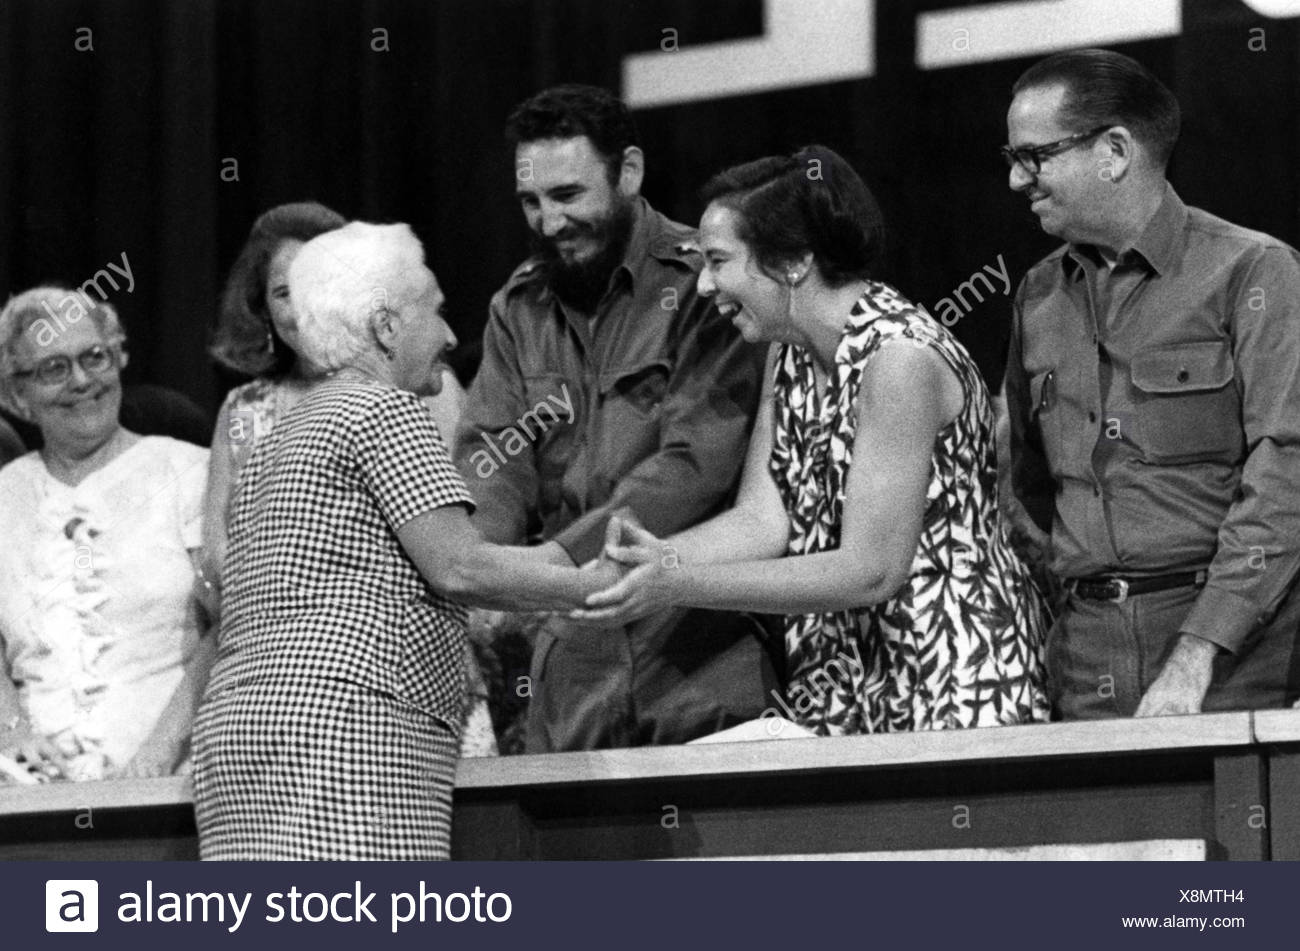 Castro, Fidel, * 13.8.1927, Cuban politician, head of State since 1959, with Vilma Espin, congratulating Rosa Pereda, 10th anniversary of FMC, (Federation of the Cuban Women), 1970, shaking hands, compliments, congratulation, congratulations, handshake, female, woman, women, , Additional-Rights-Clearances-NA - Stock Image